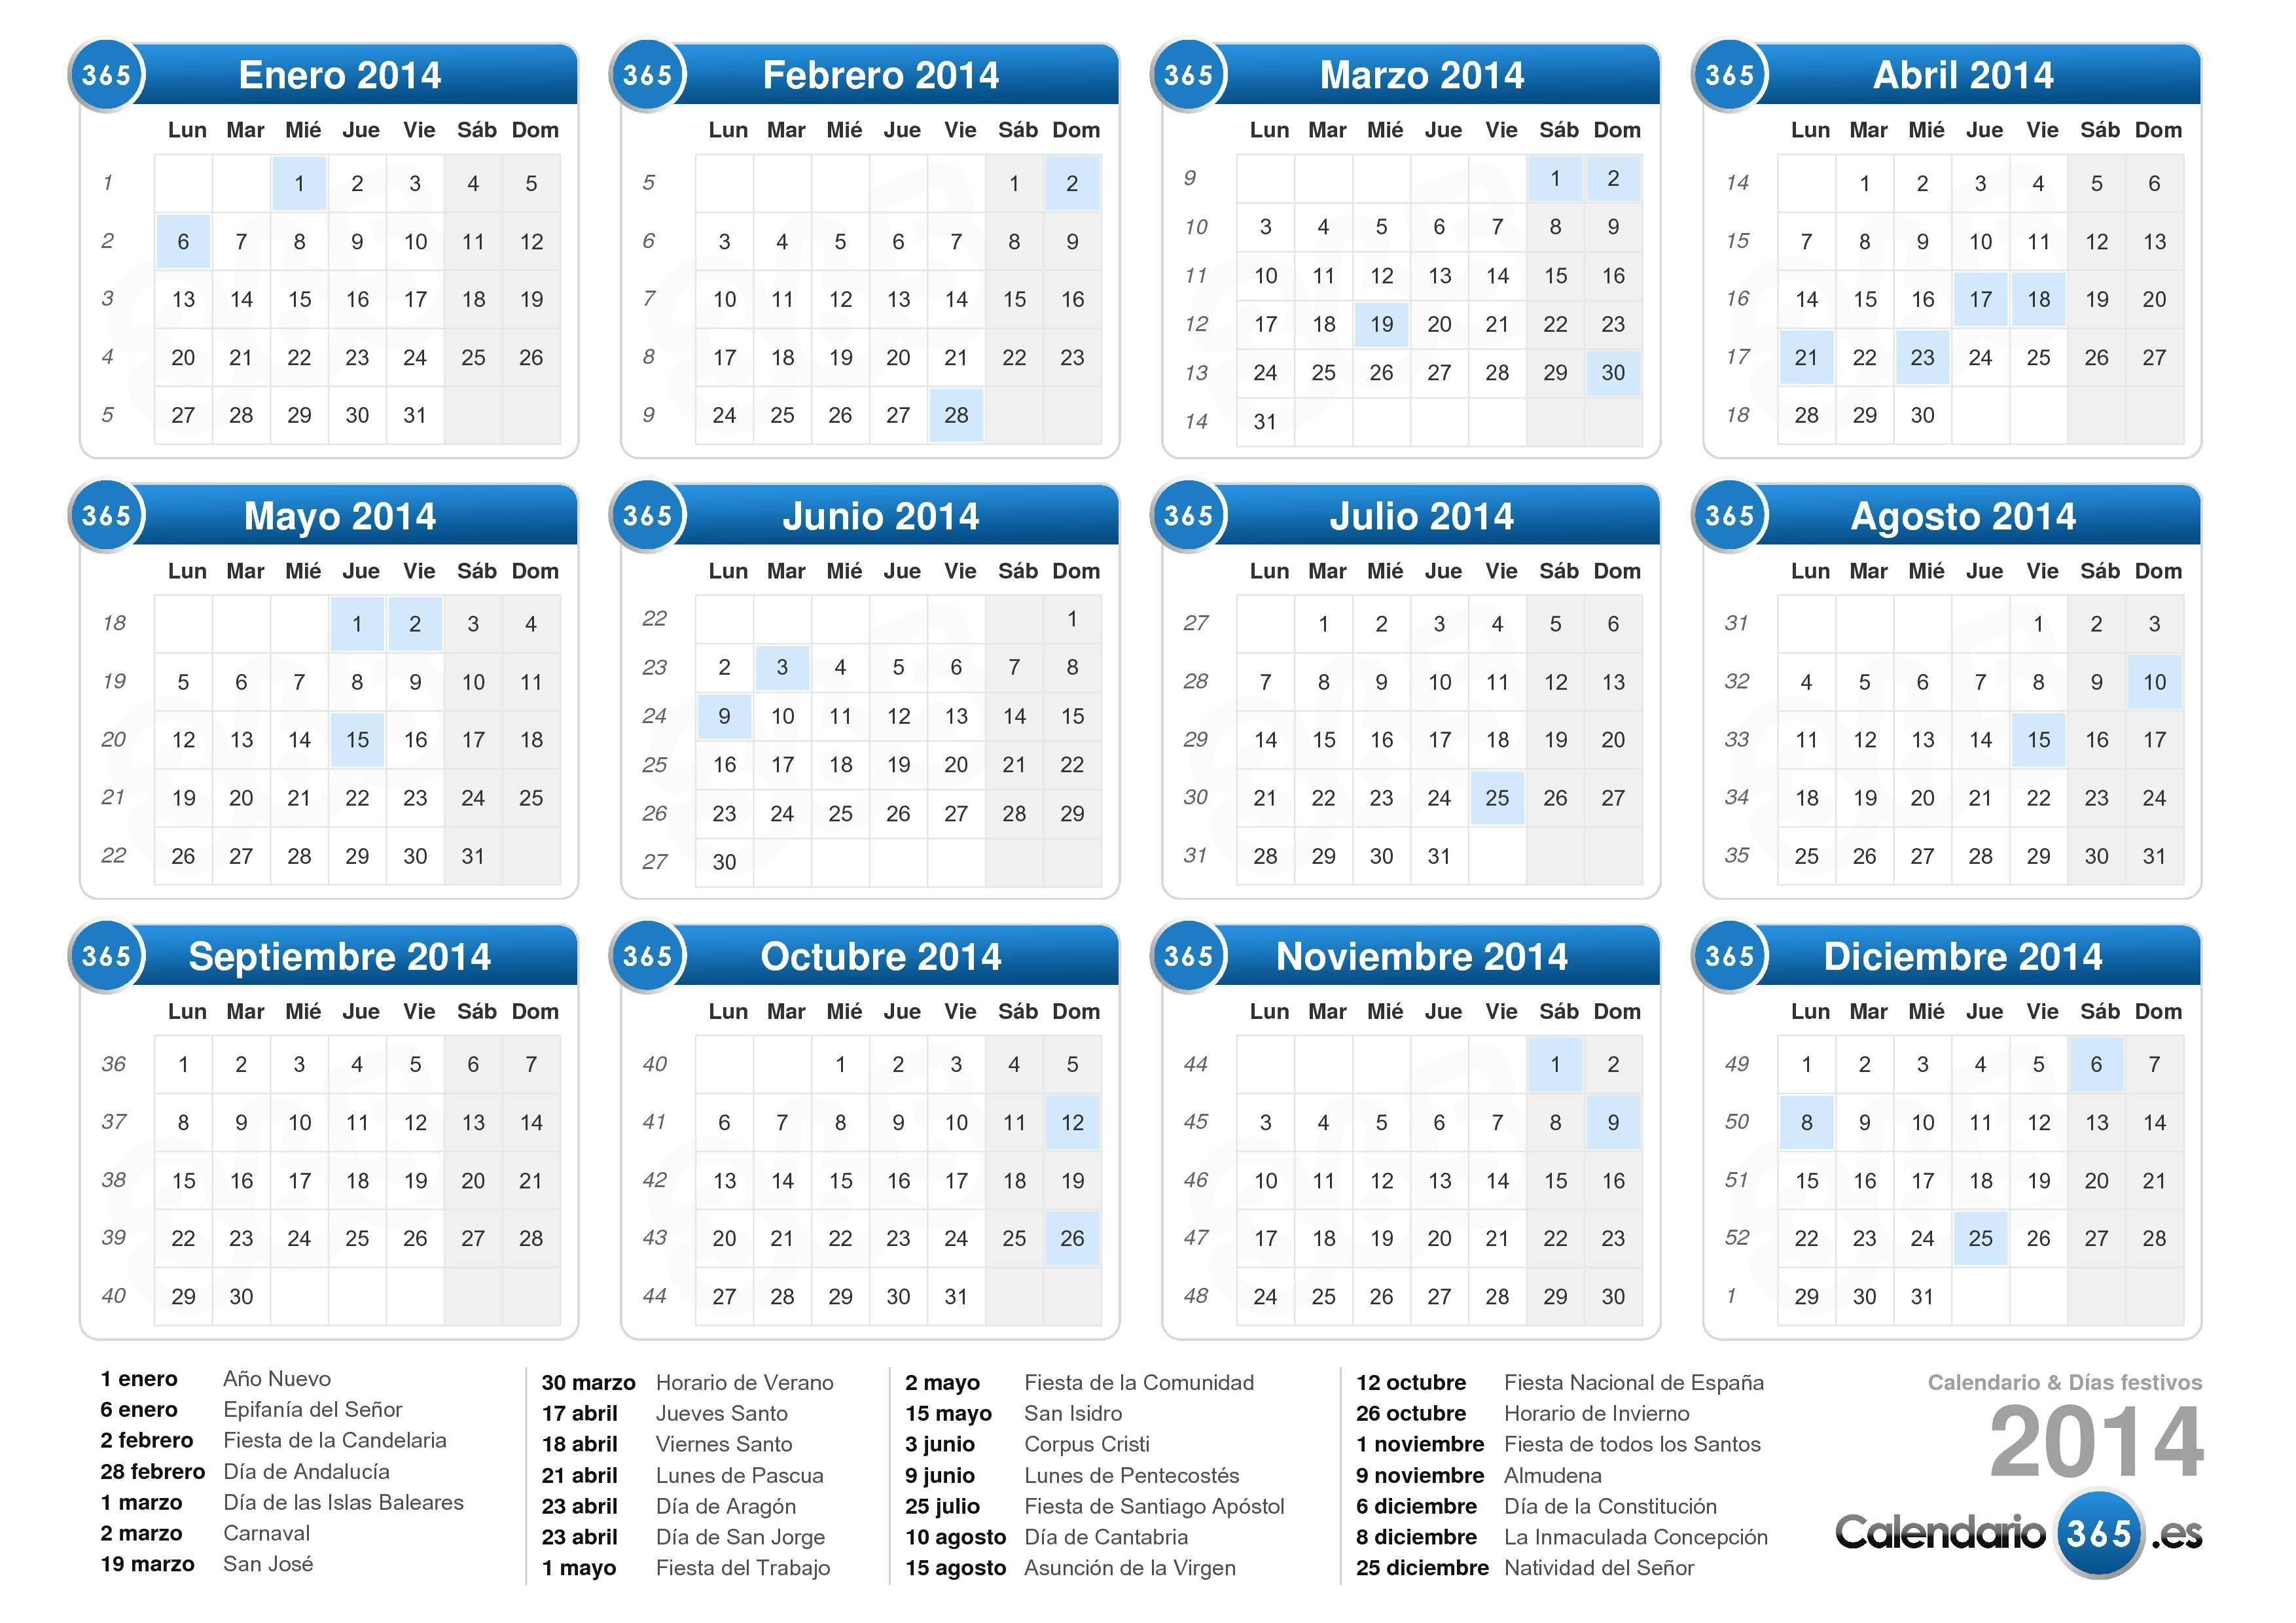 Calendario 2017 Baleares Para Imprimir Actual List Of Synonyms and Antonyms Of the Word Calendario 2014 Mexico Of Calendario 2017 Baleares Para Imprimir Más Recientemente Liberado Impresionante Imagenes Para Colorear Honestidad